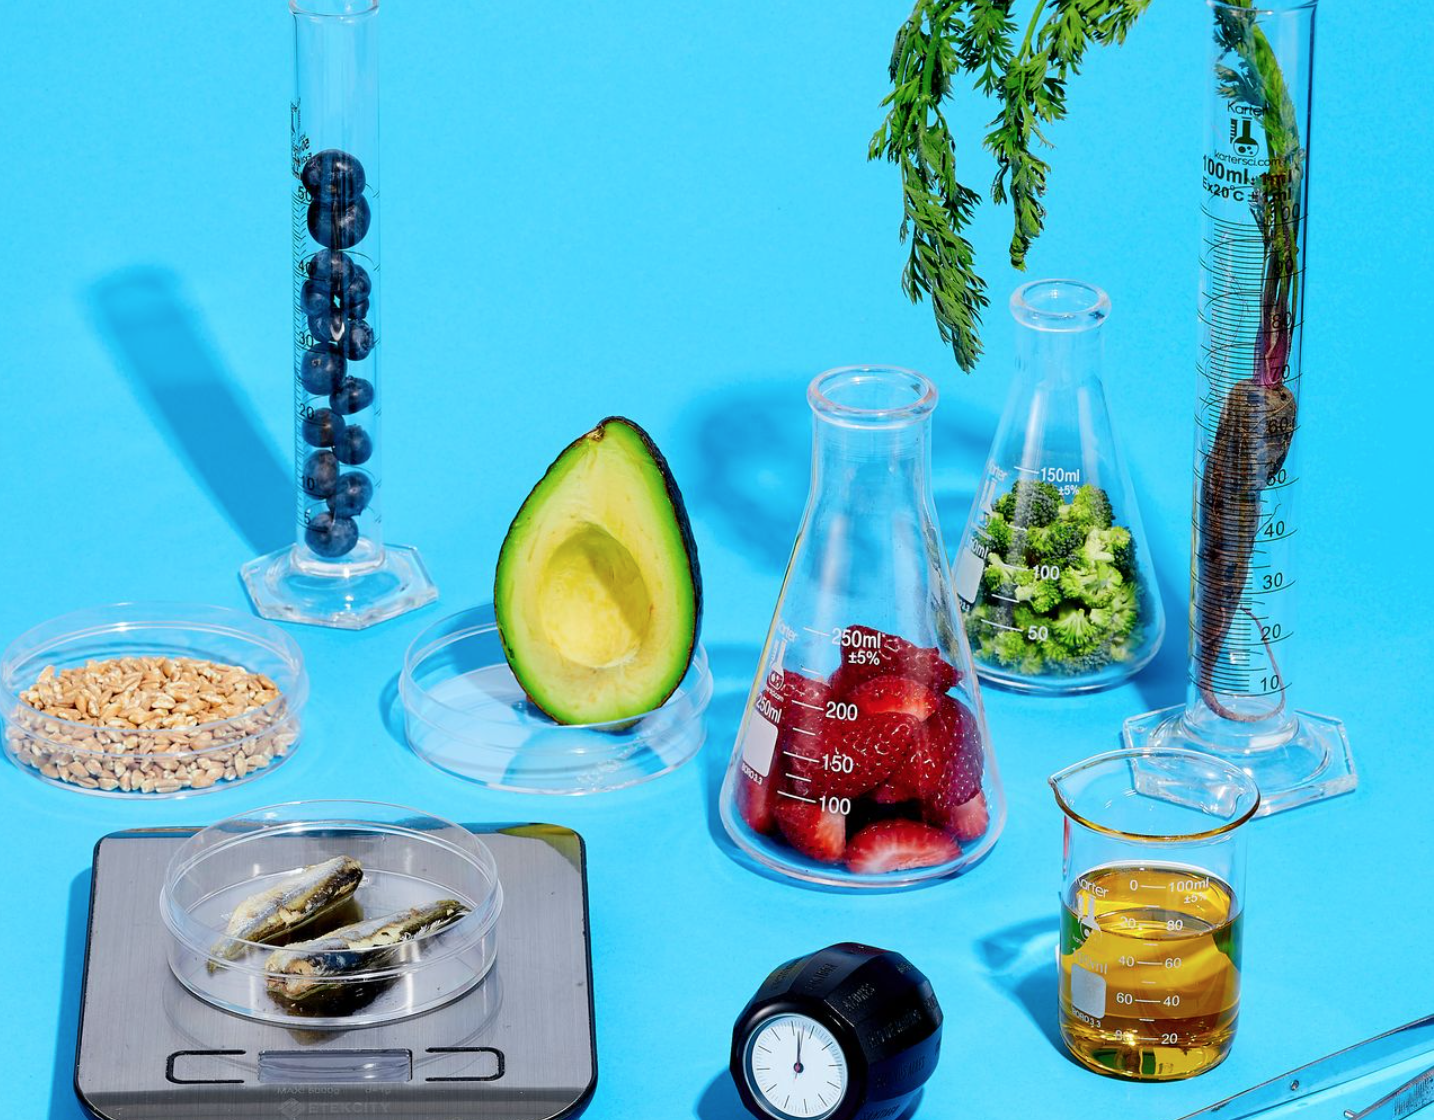 Diets Engineered to Work With Your Microbiome Are Latest Startup Craze